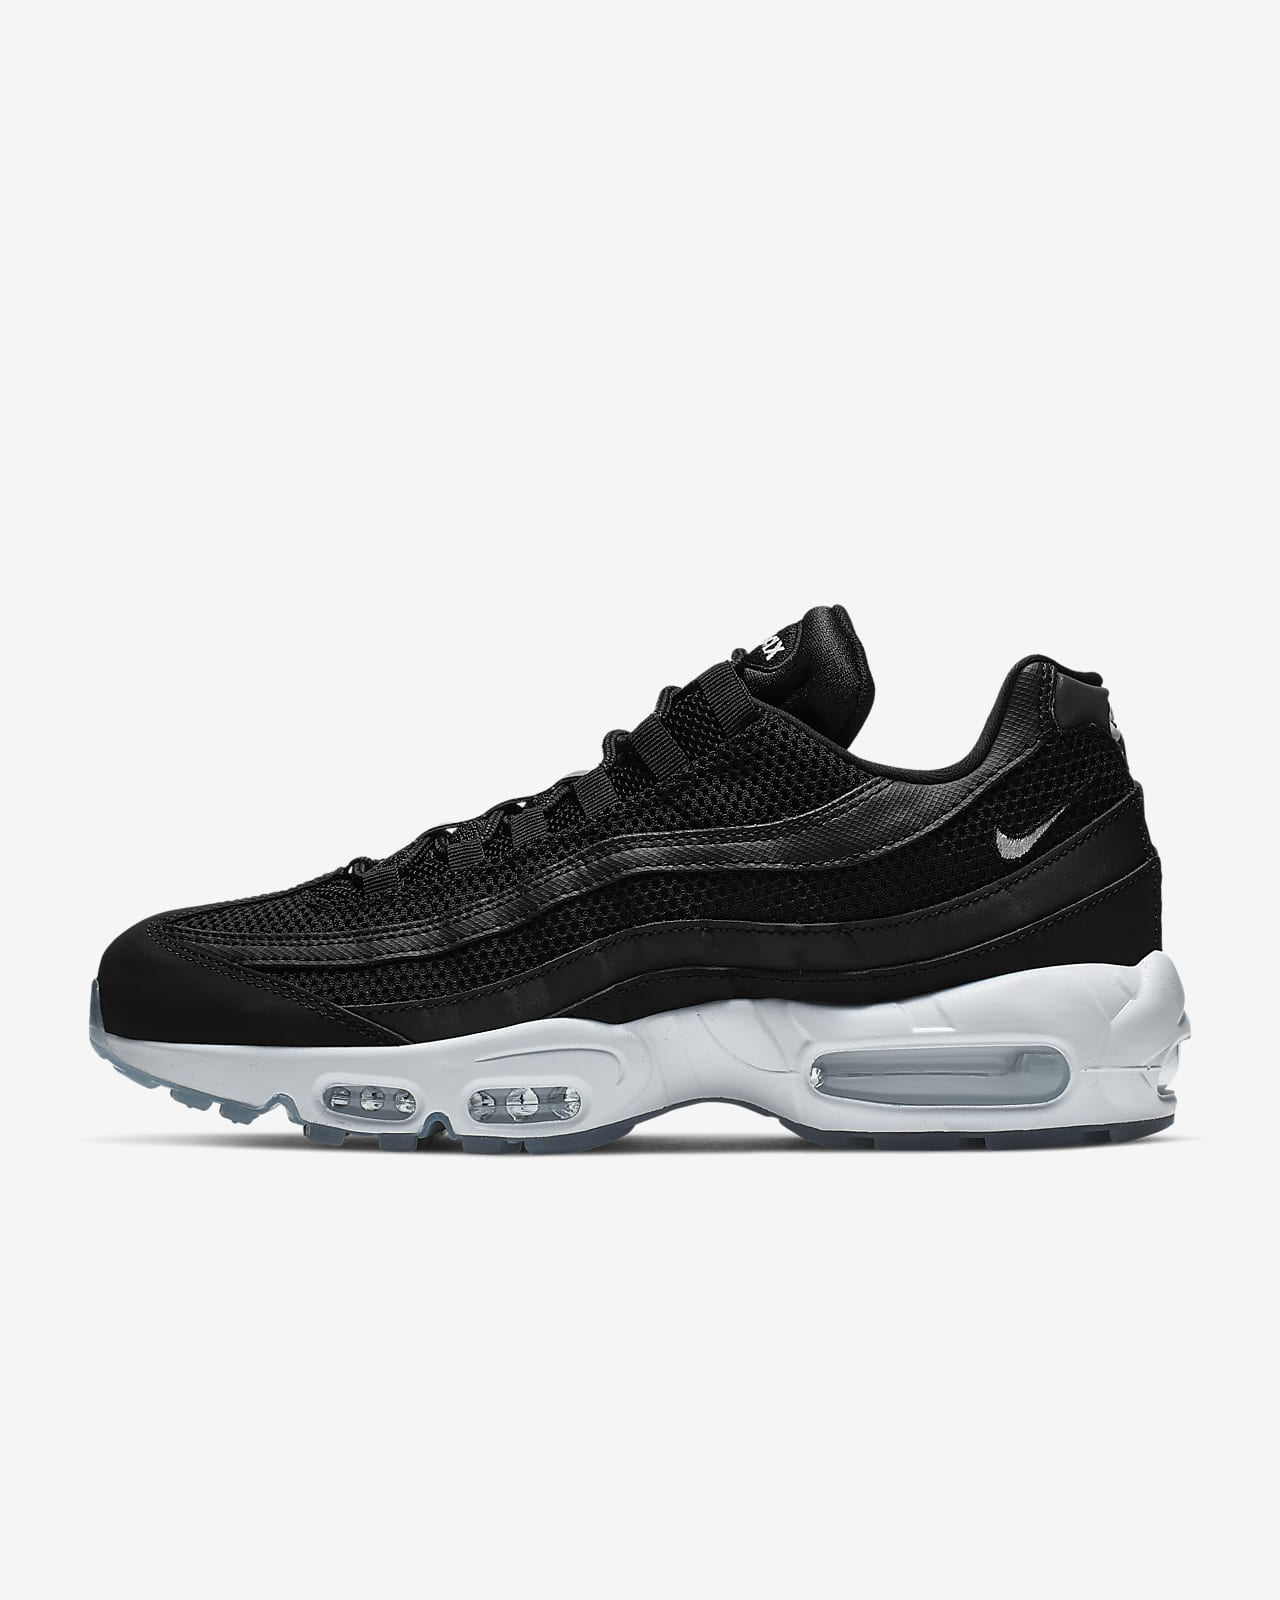 Hueso creativo Barrio bajo  Nike Air Max 95 Essential Men's Shoe. Nike.com